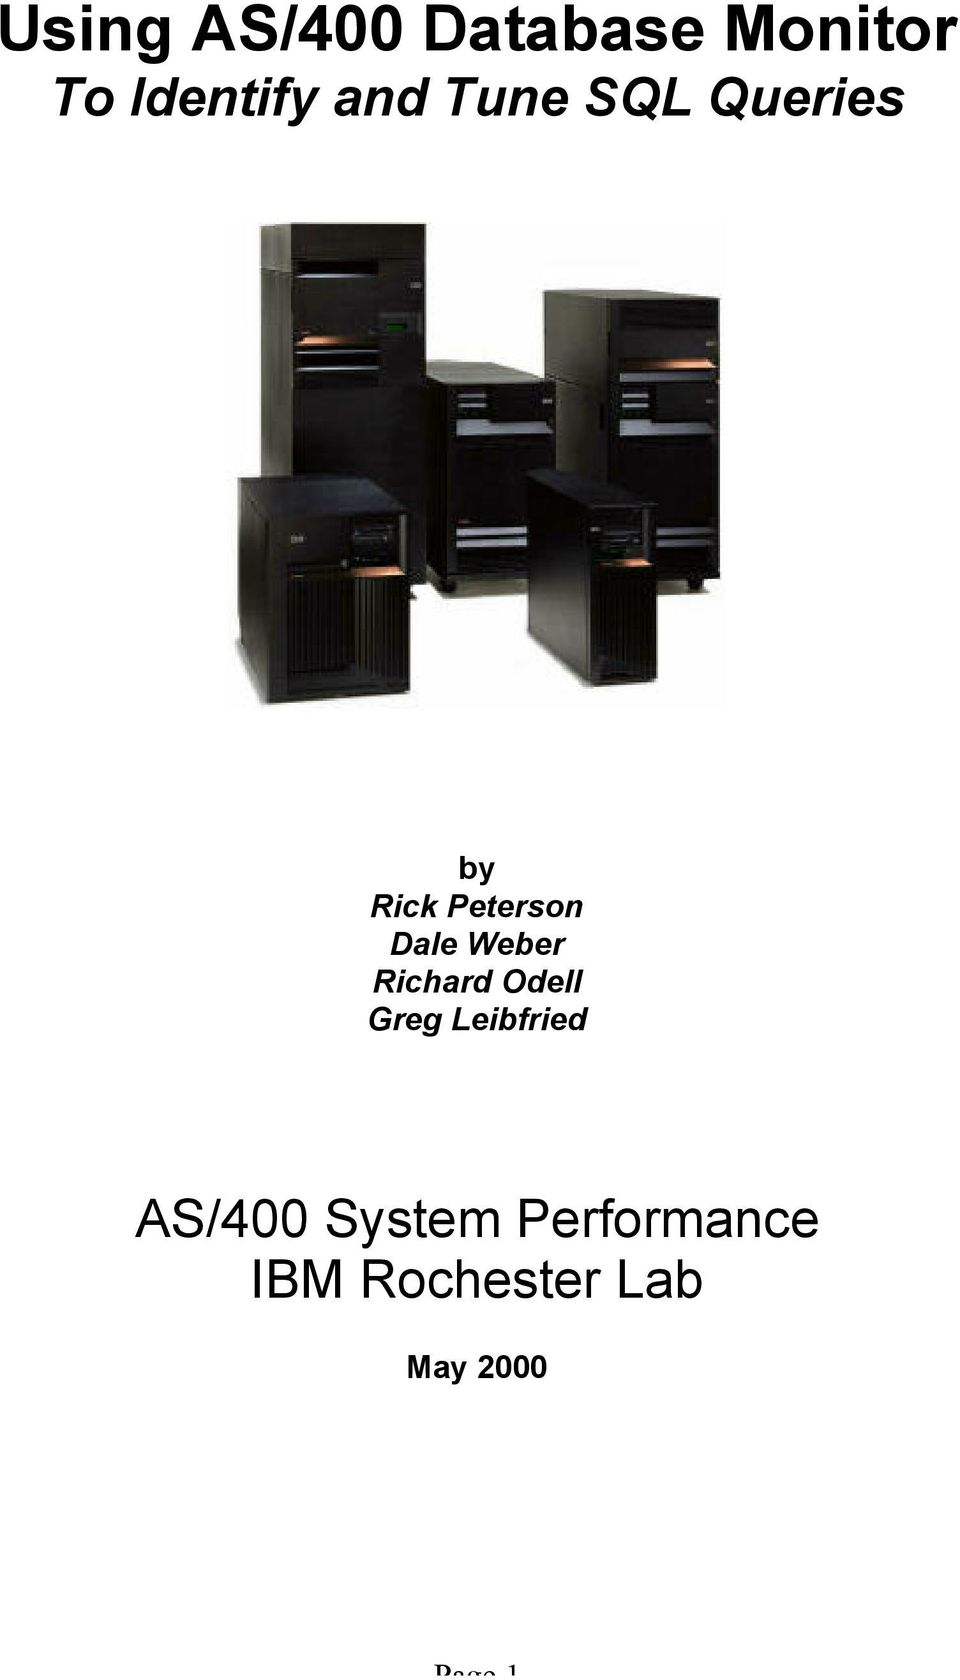 AS/400 System Performance